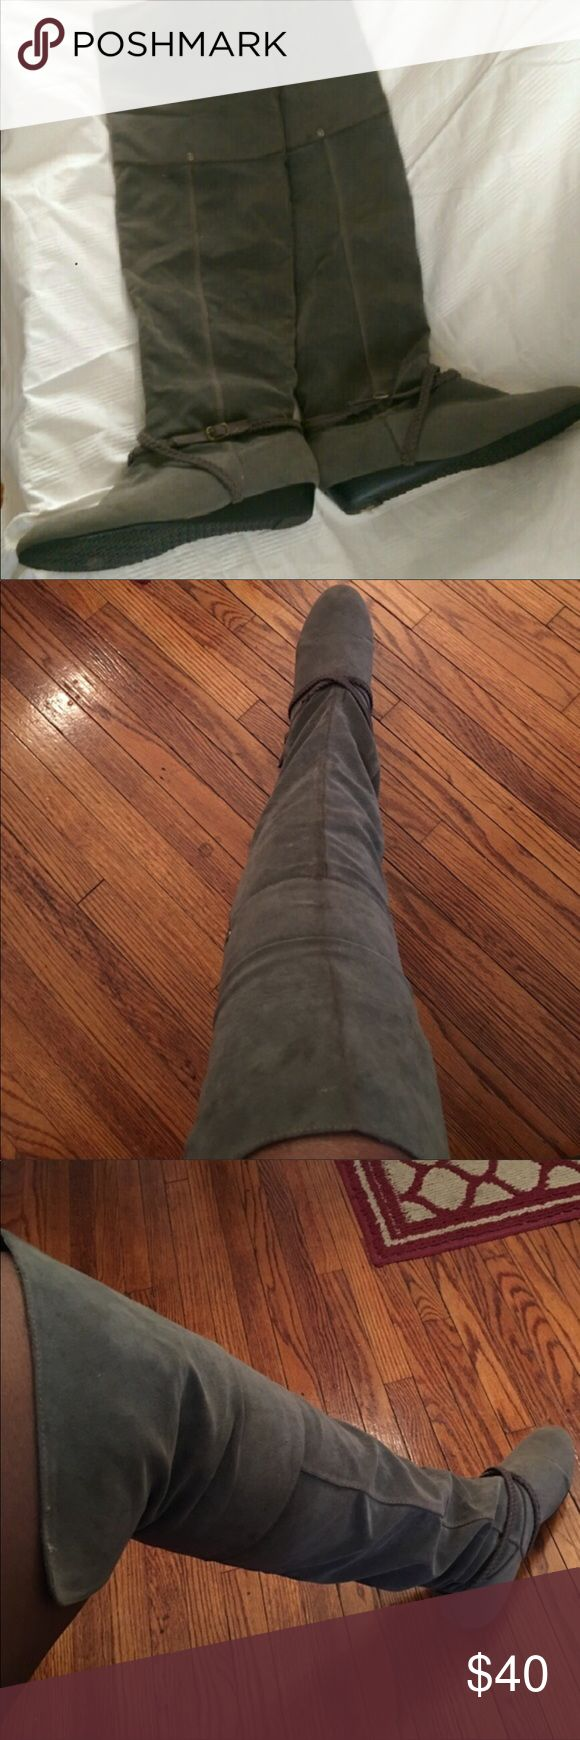 Over the knee Gray Boots, Size 7.5 Over the knee, faux suede, flat boots. In great condition. Fits size 7.5. Always accepting offers! Jacobies Shoes Over the Knee Boots